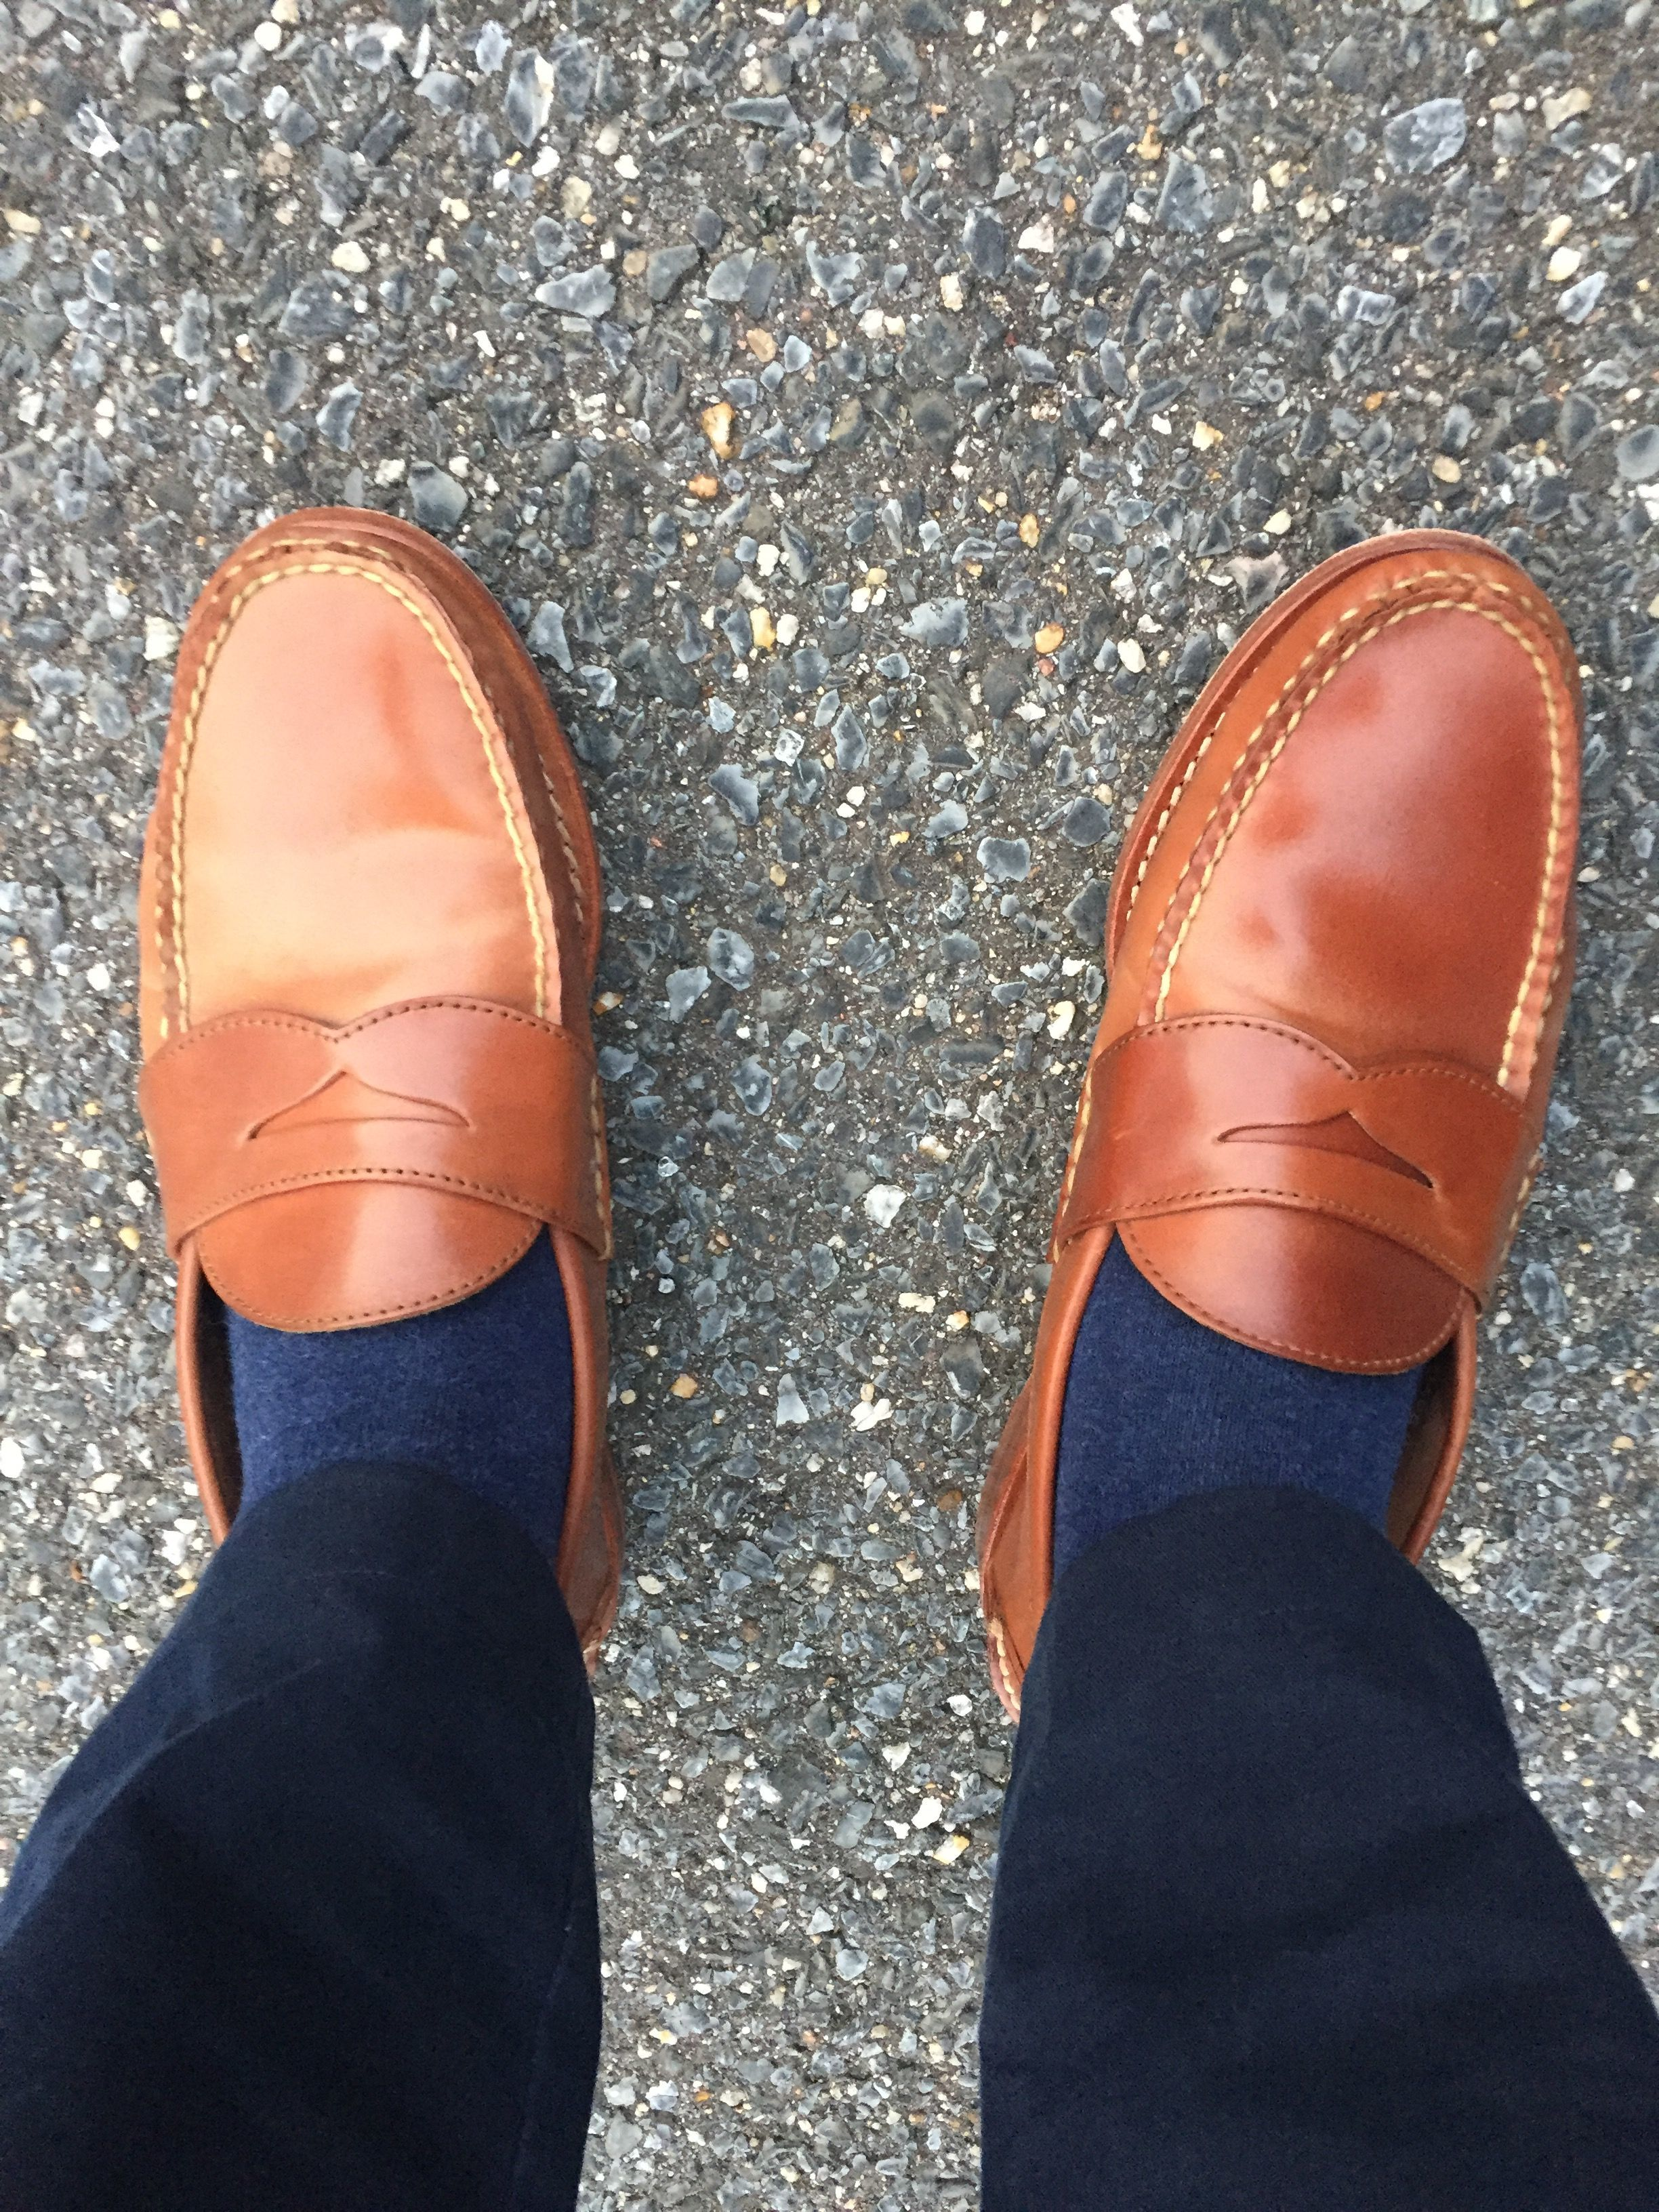 e412d1945b RANCOURT   Co. Shoes - Made in Maine